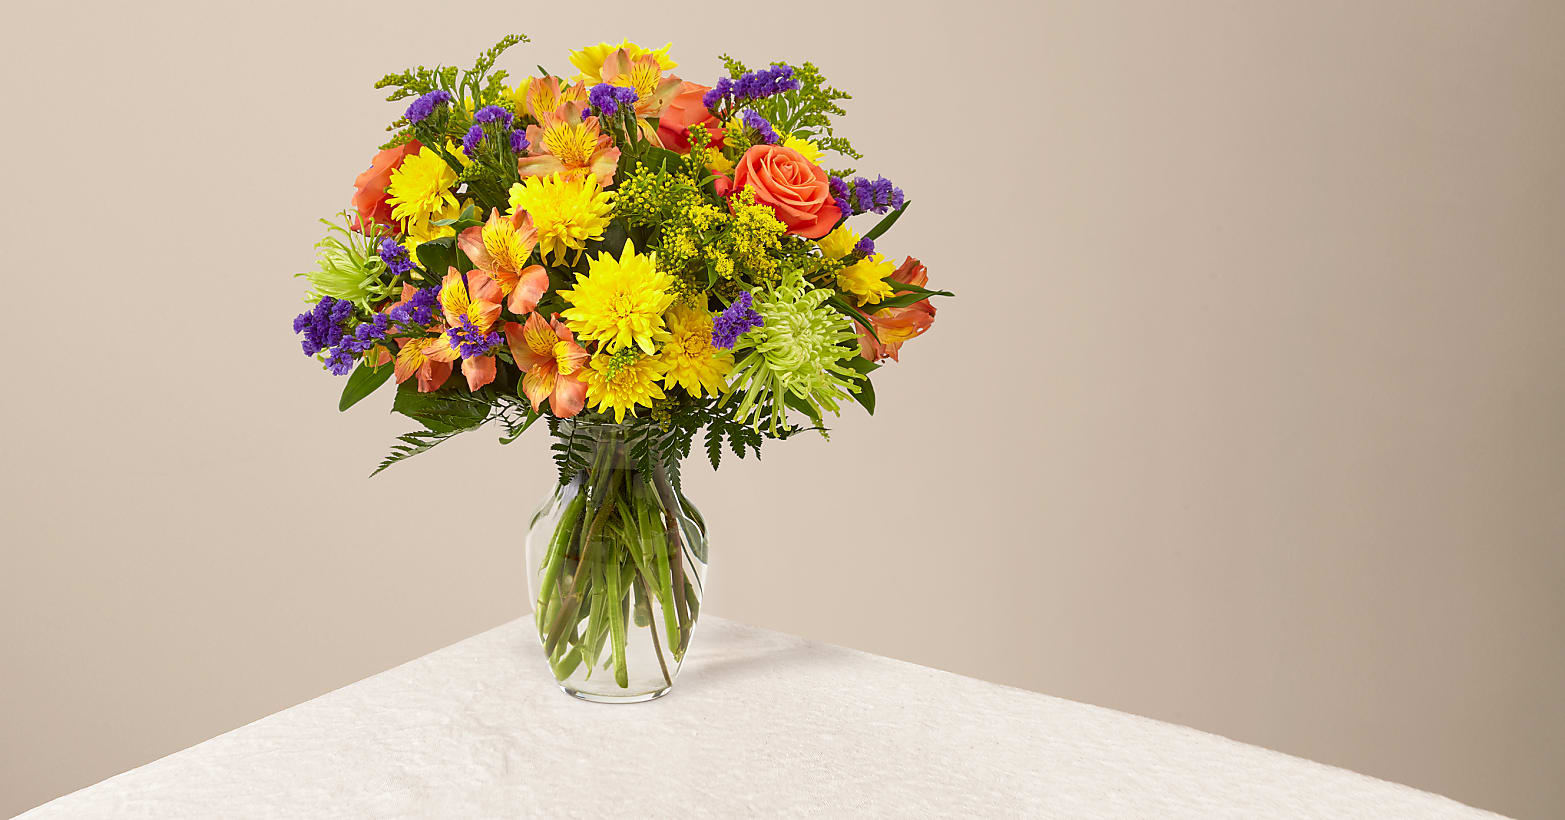 Marmalade Skies Bouquet - Image 1 Of 2